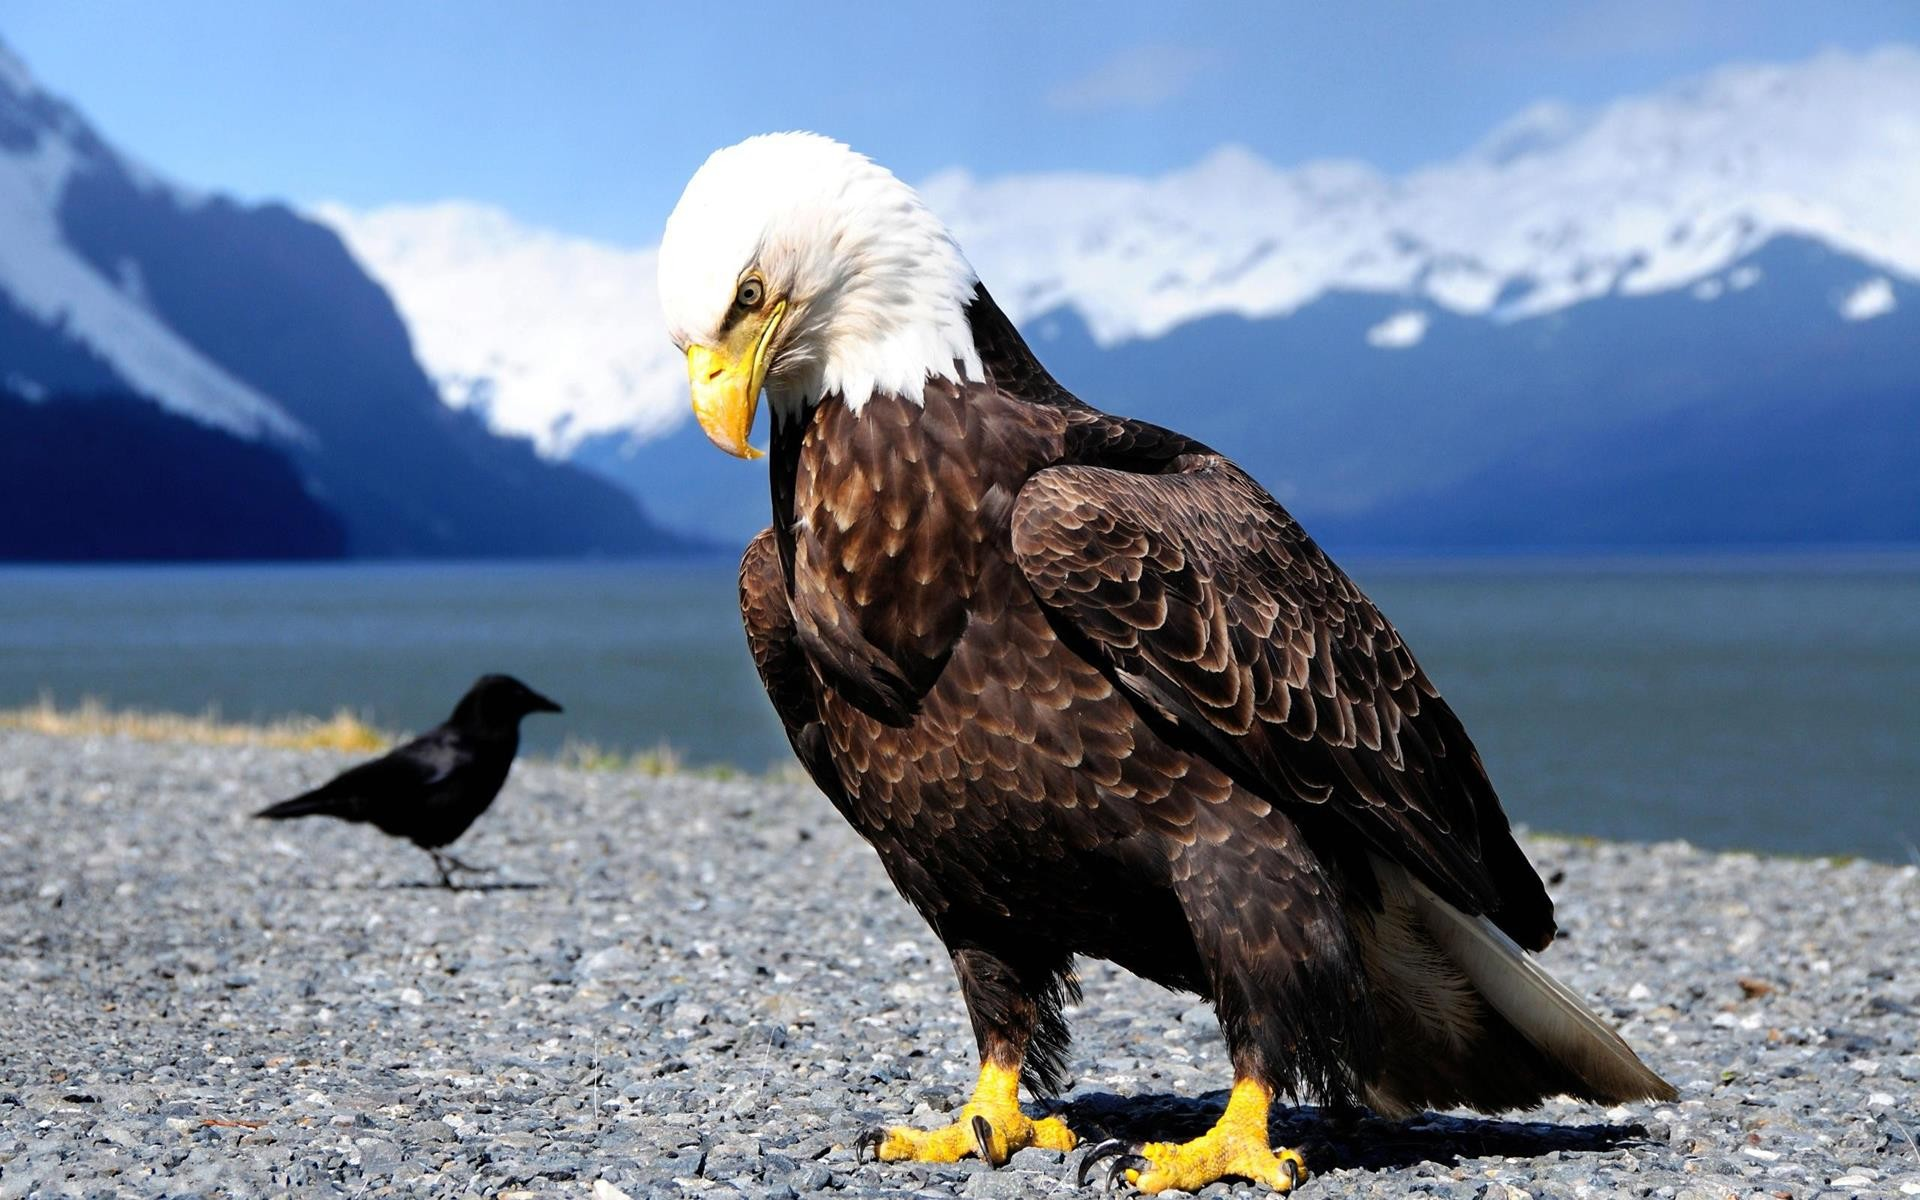 Bald Eagle Wallpaper Hd 010